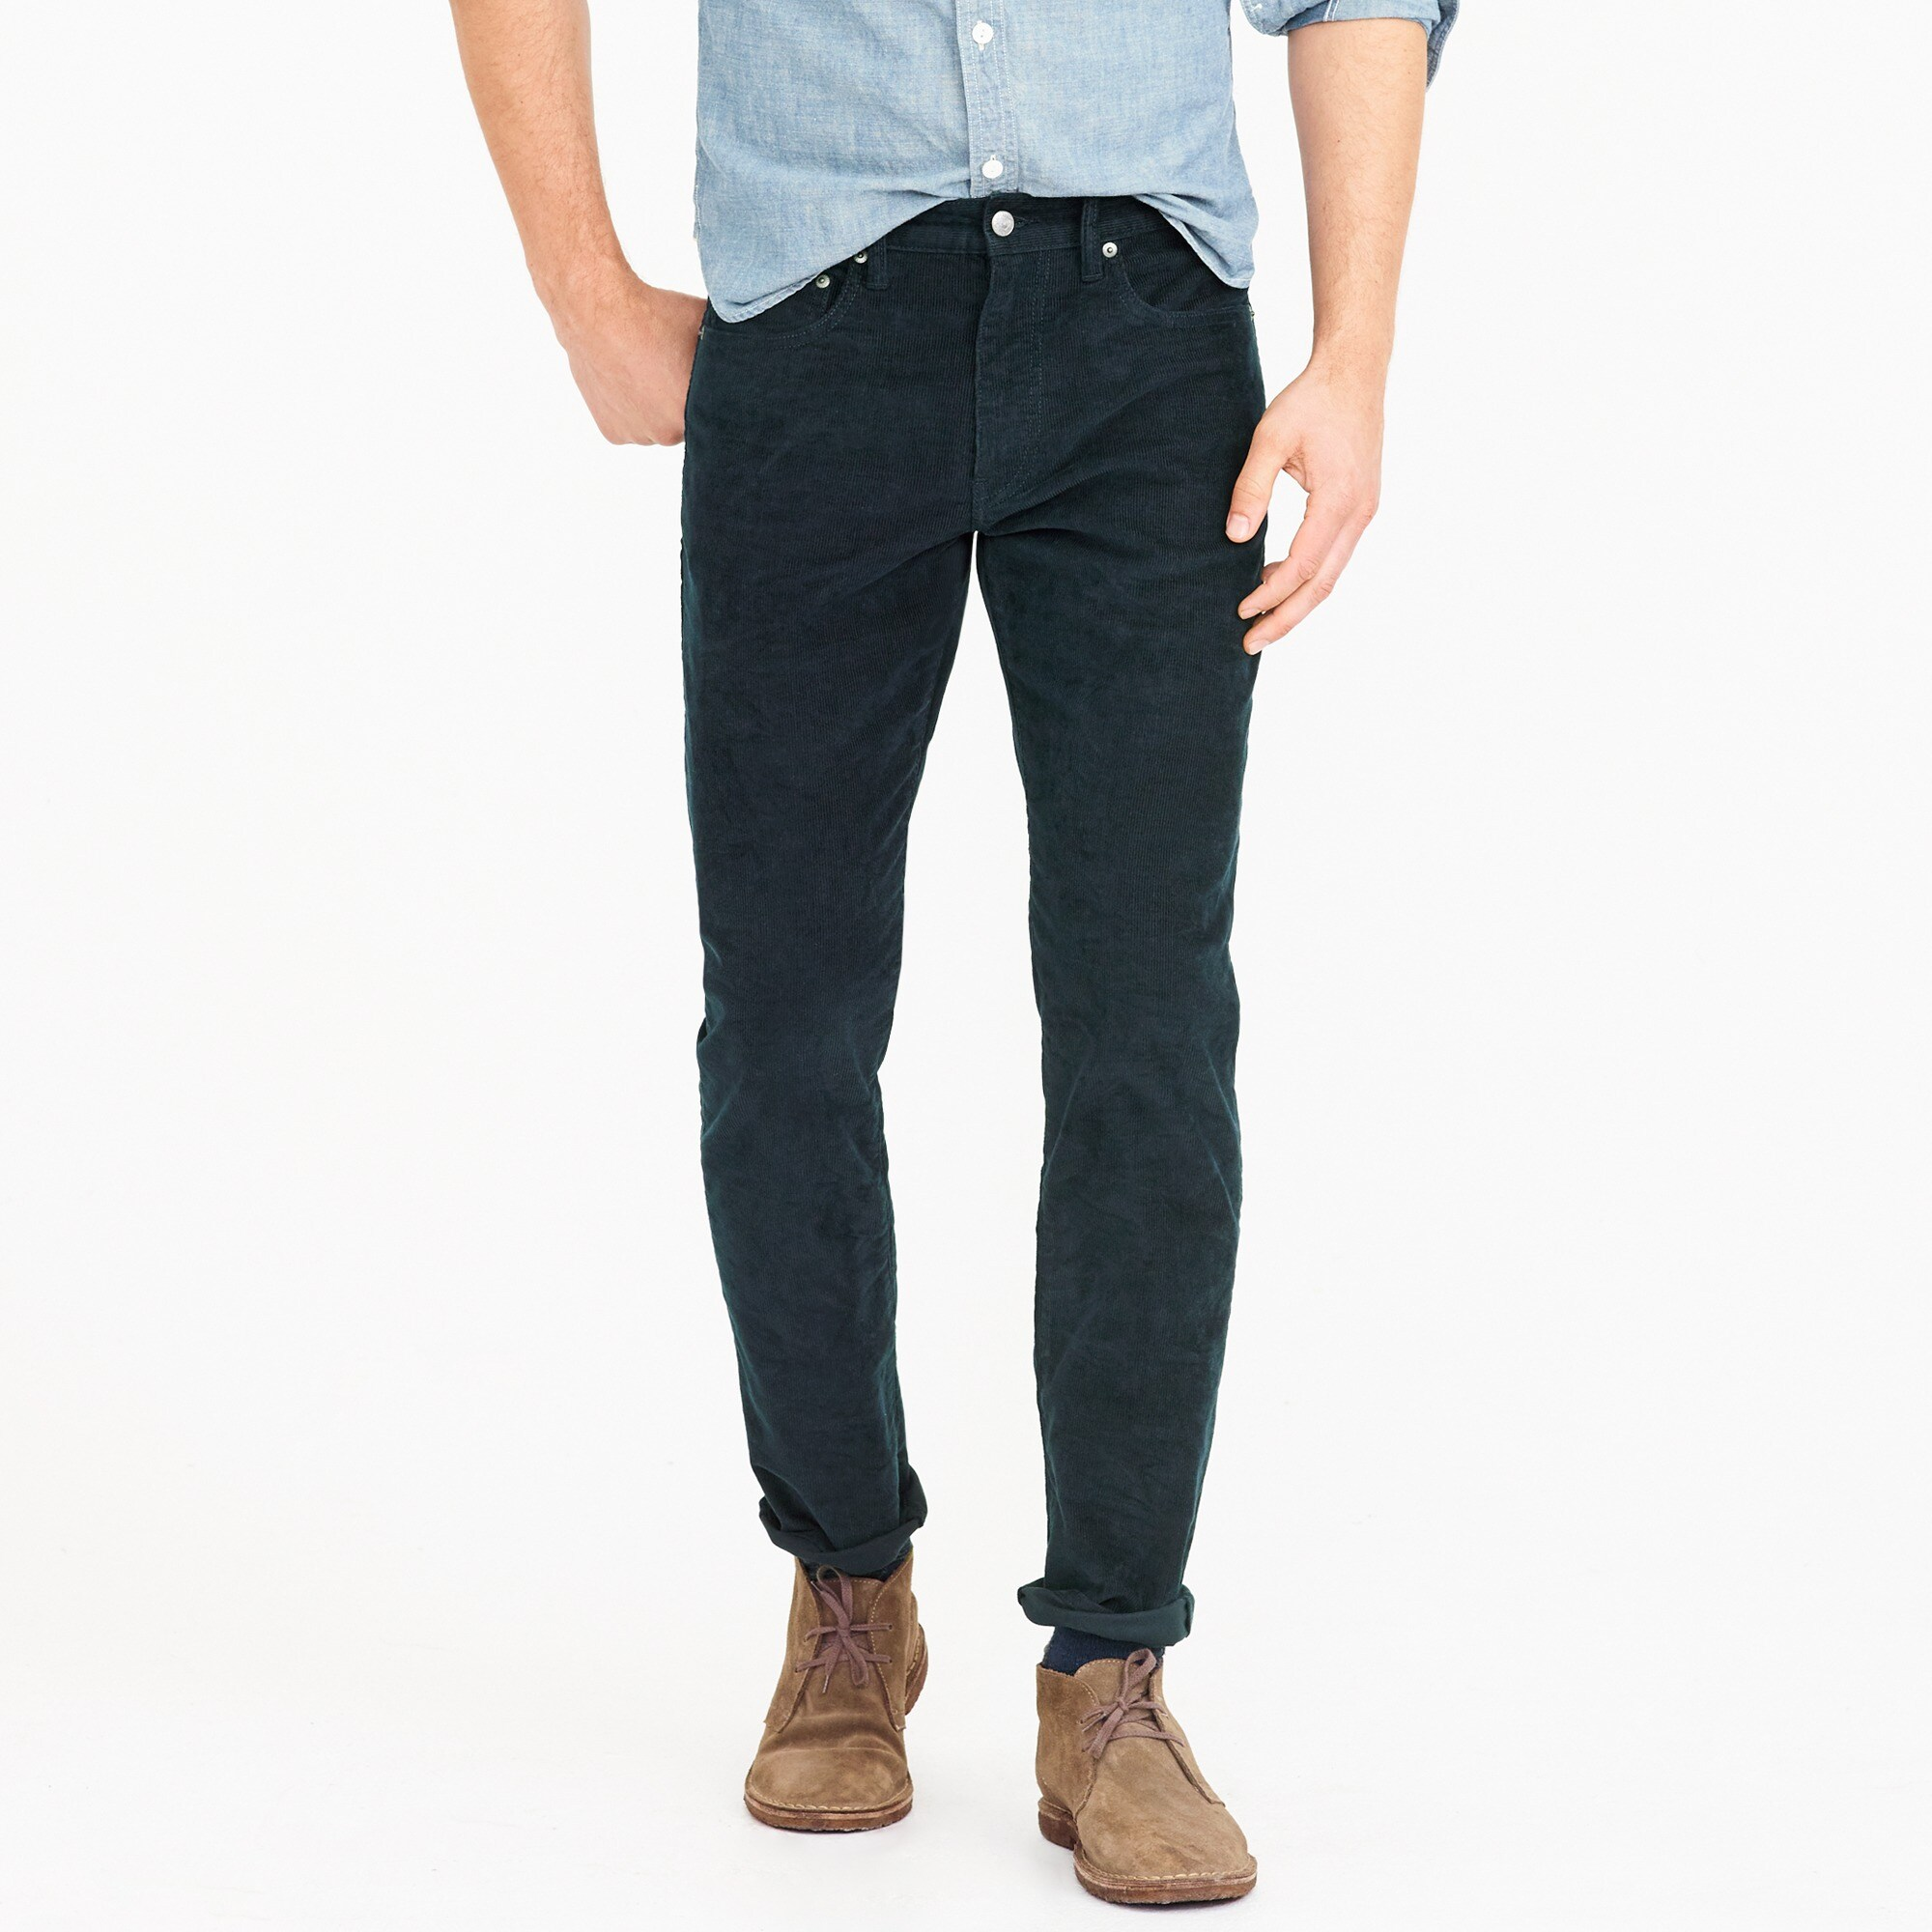 770 Straight-fit pant in corduroy men pants c